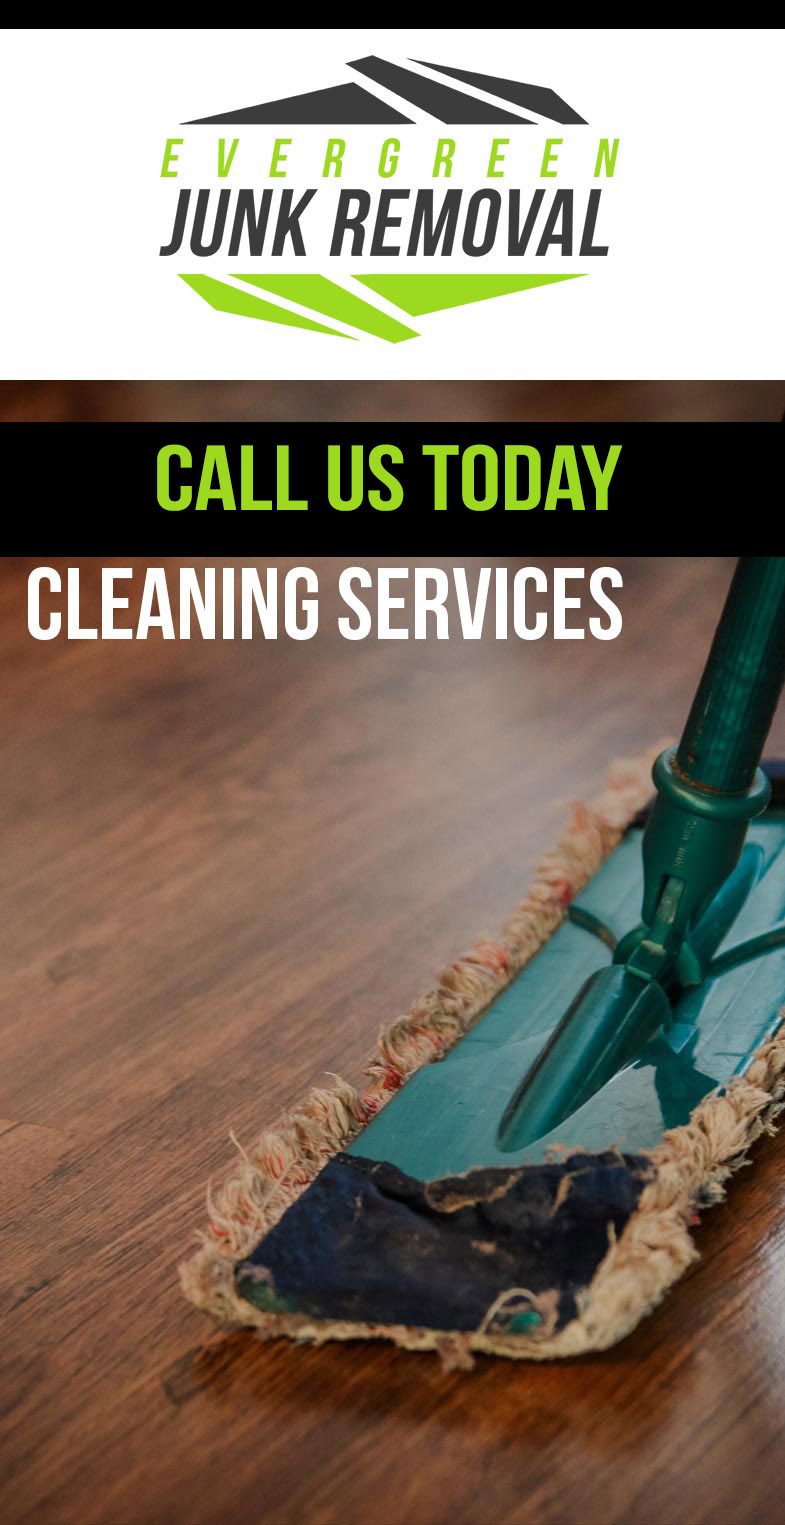 Lauderhill Florida Maid Services